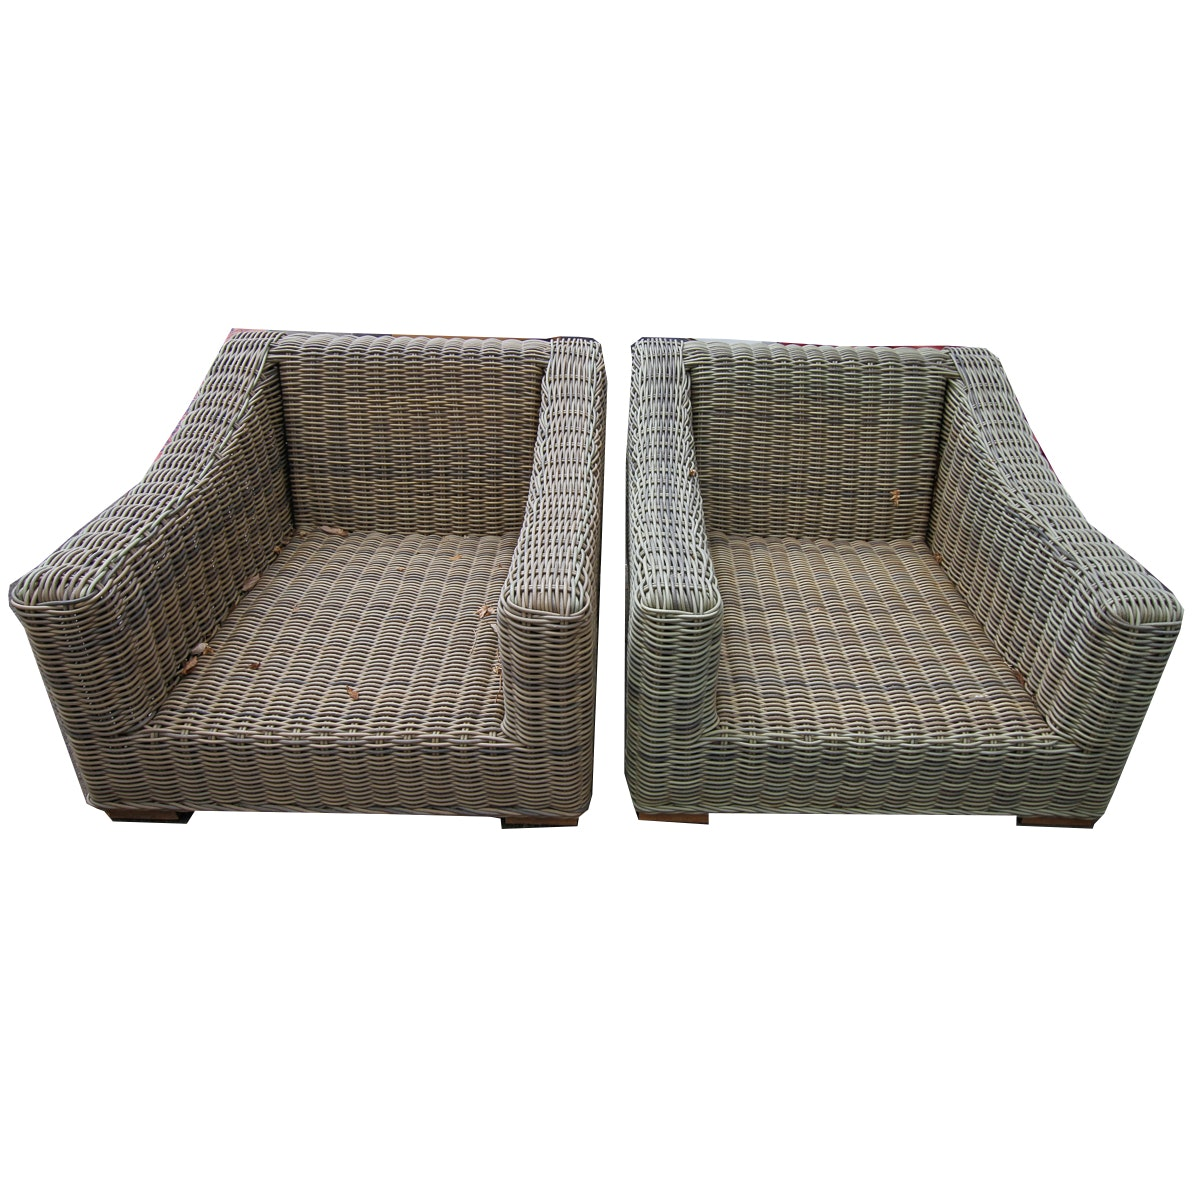 Pair of Outdoor Wicker Lounge Chairs